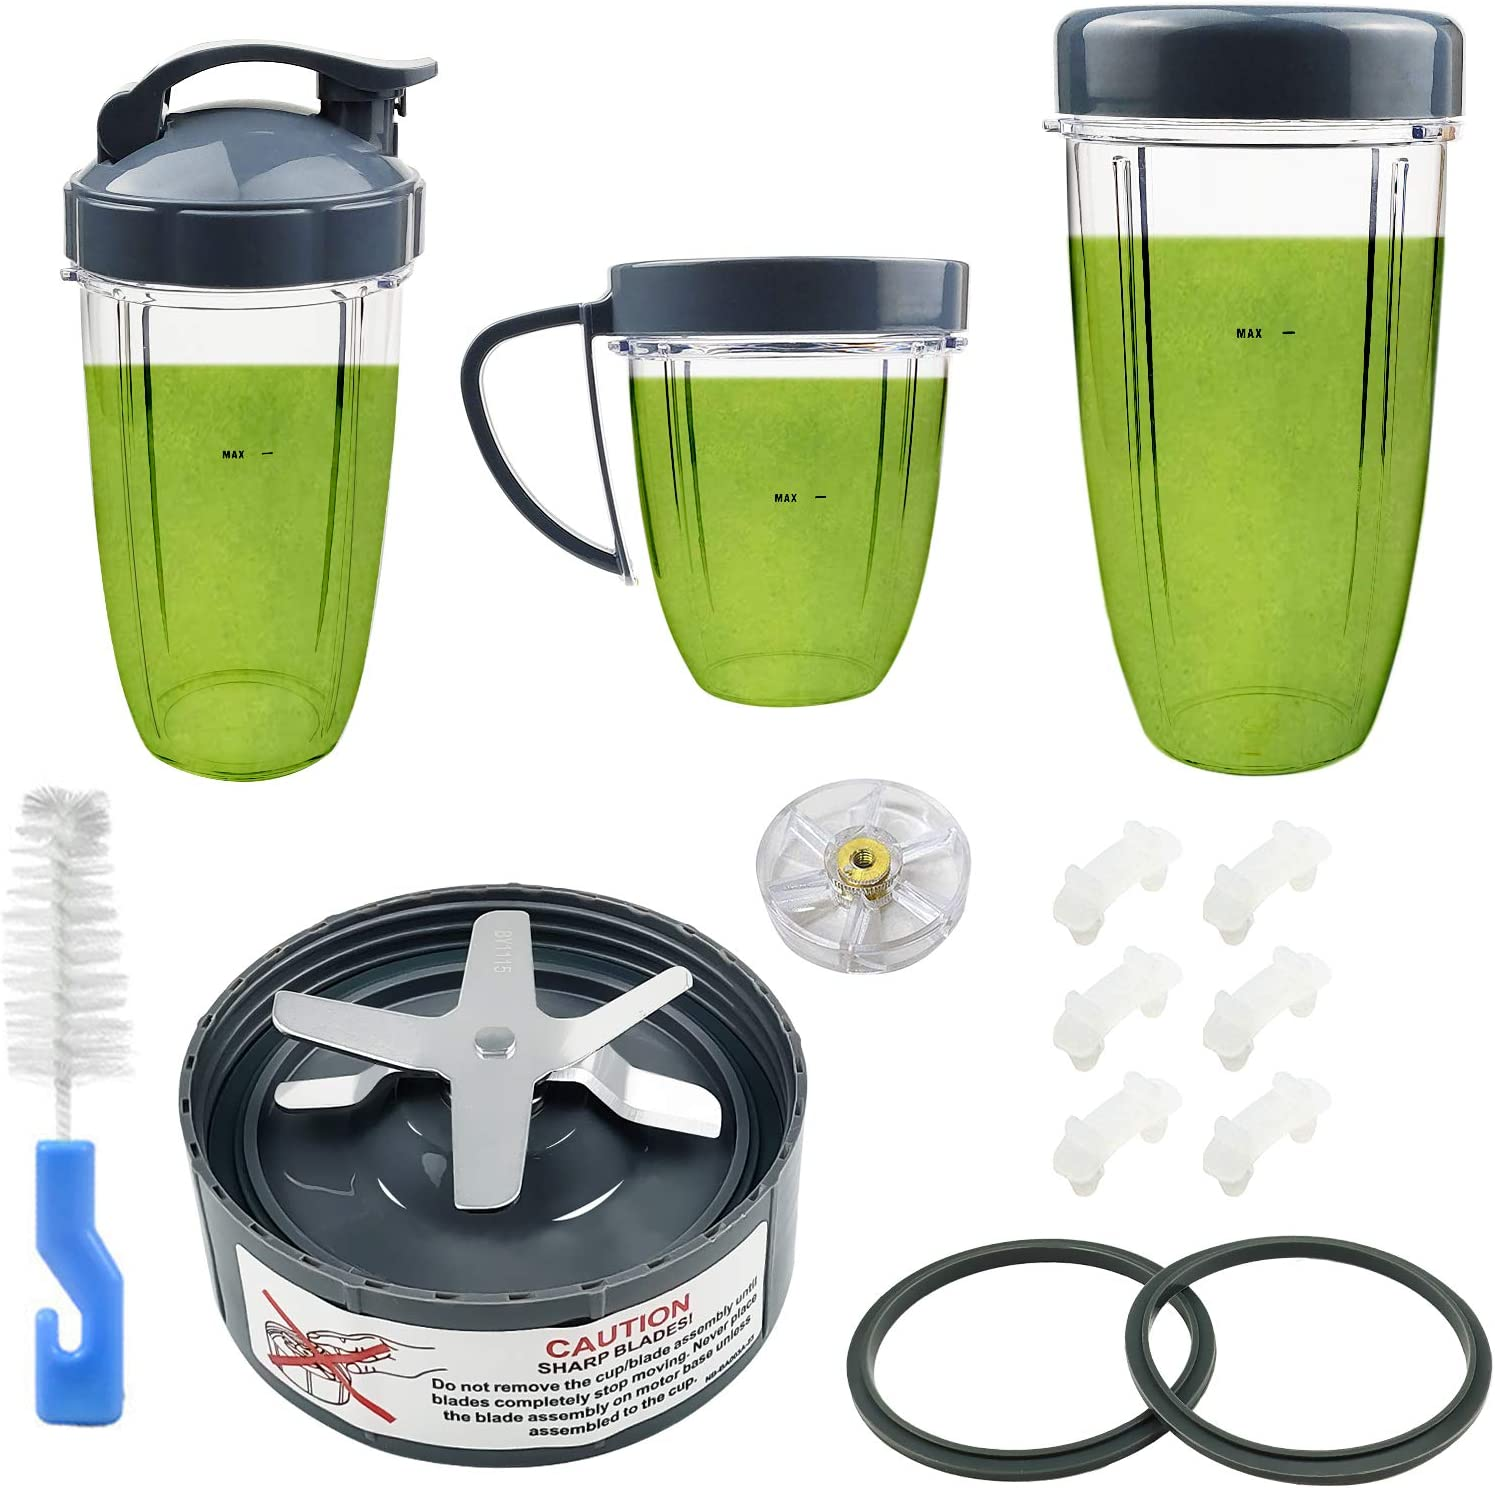 14 Pieces Blender Replacement Parts Extractor Blade And Cups for NutriBullet 600w 900w including Gasket Shock Pad and Gear (14 Pieces (1 Blade + 3 Cups +1 Lids))